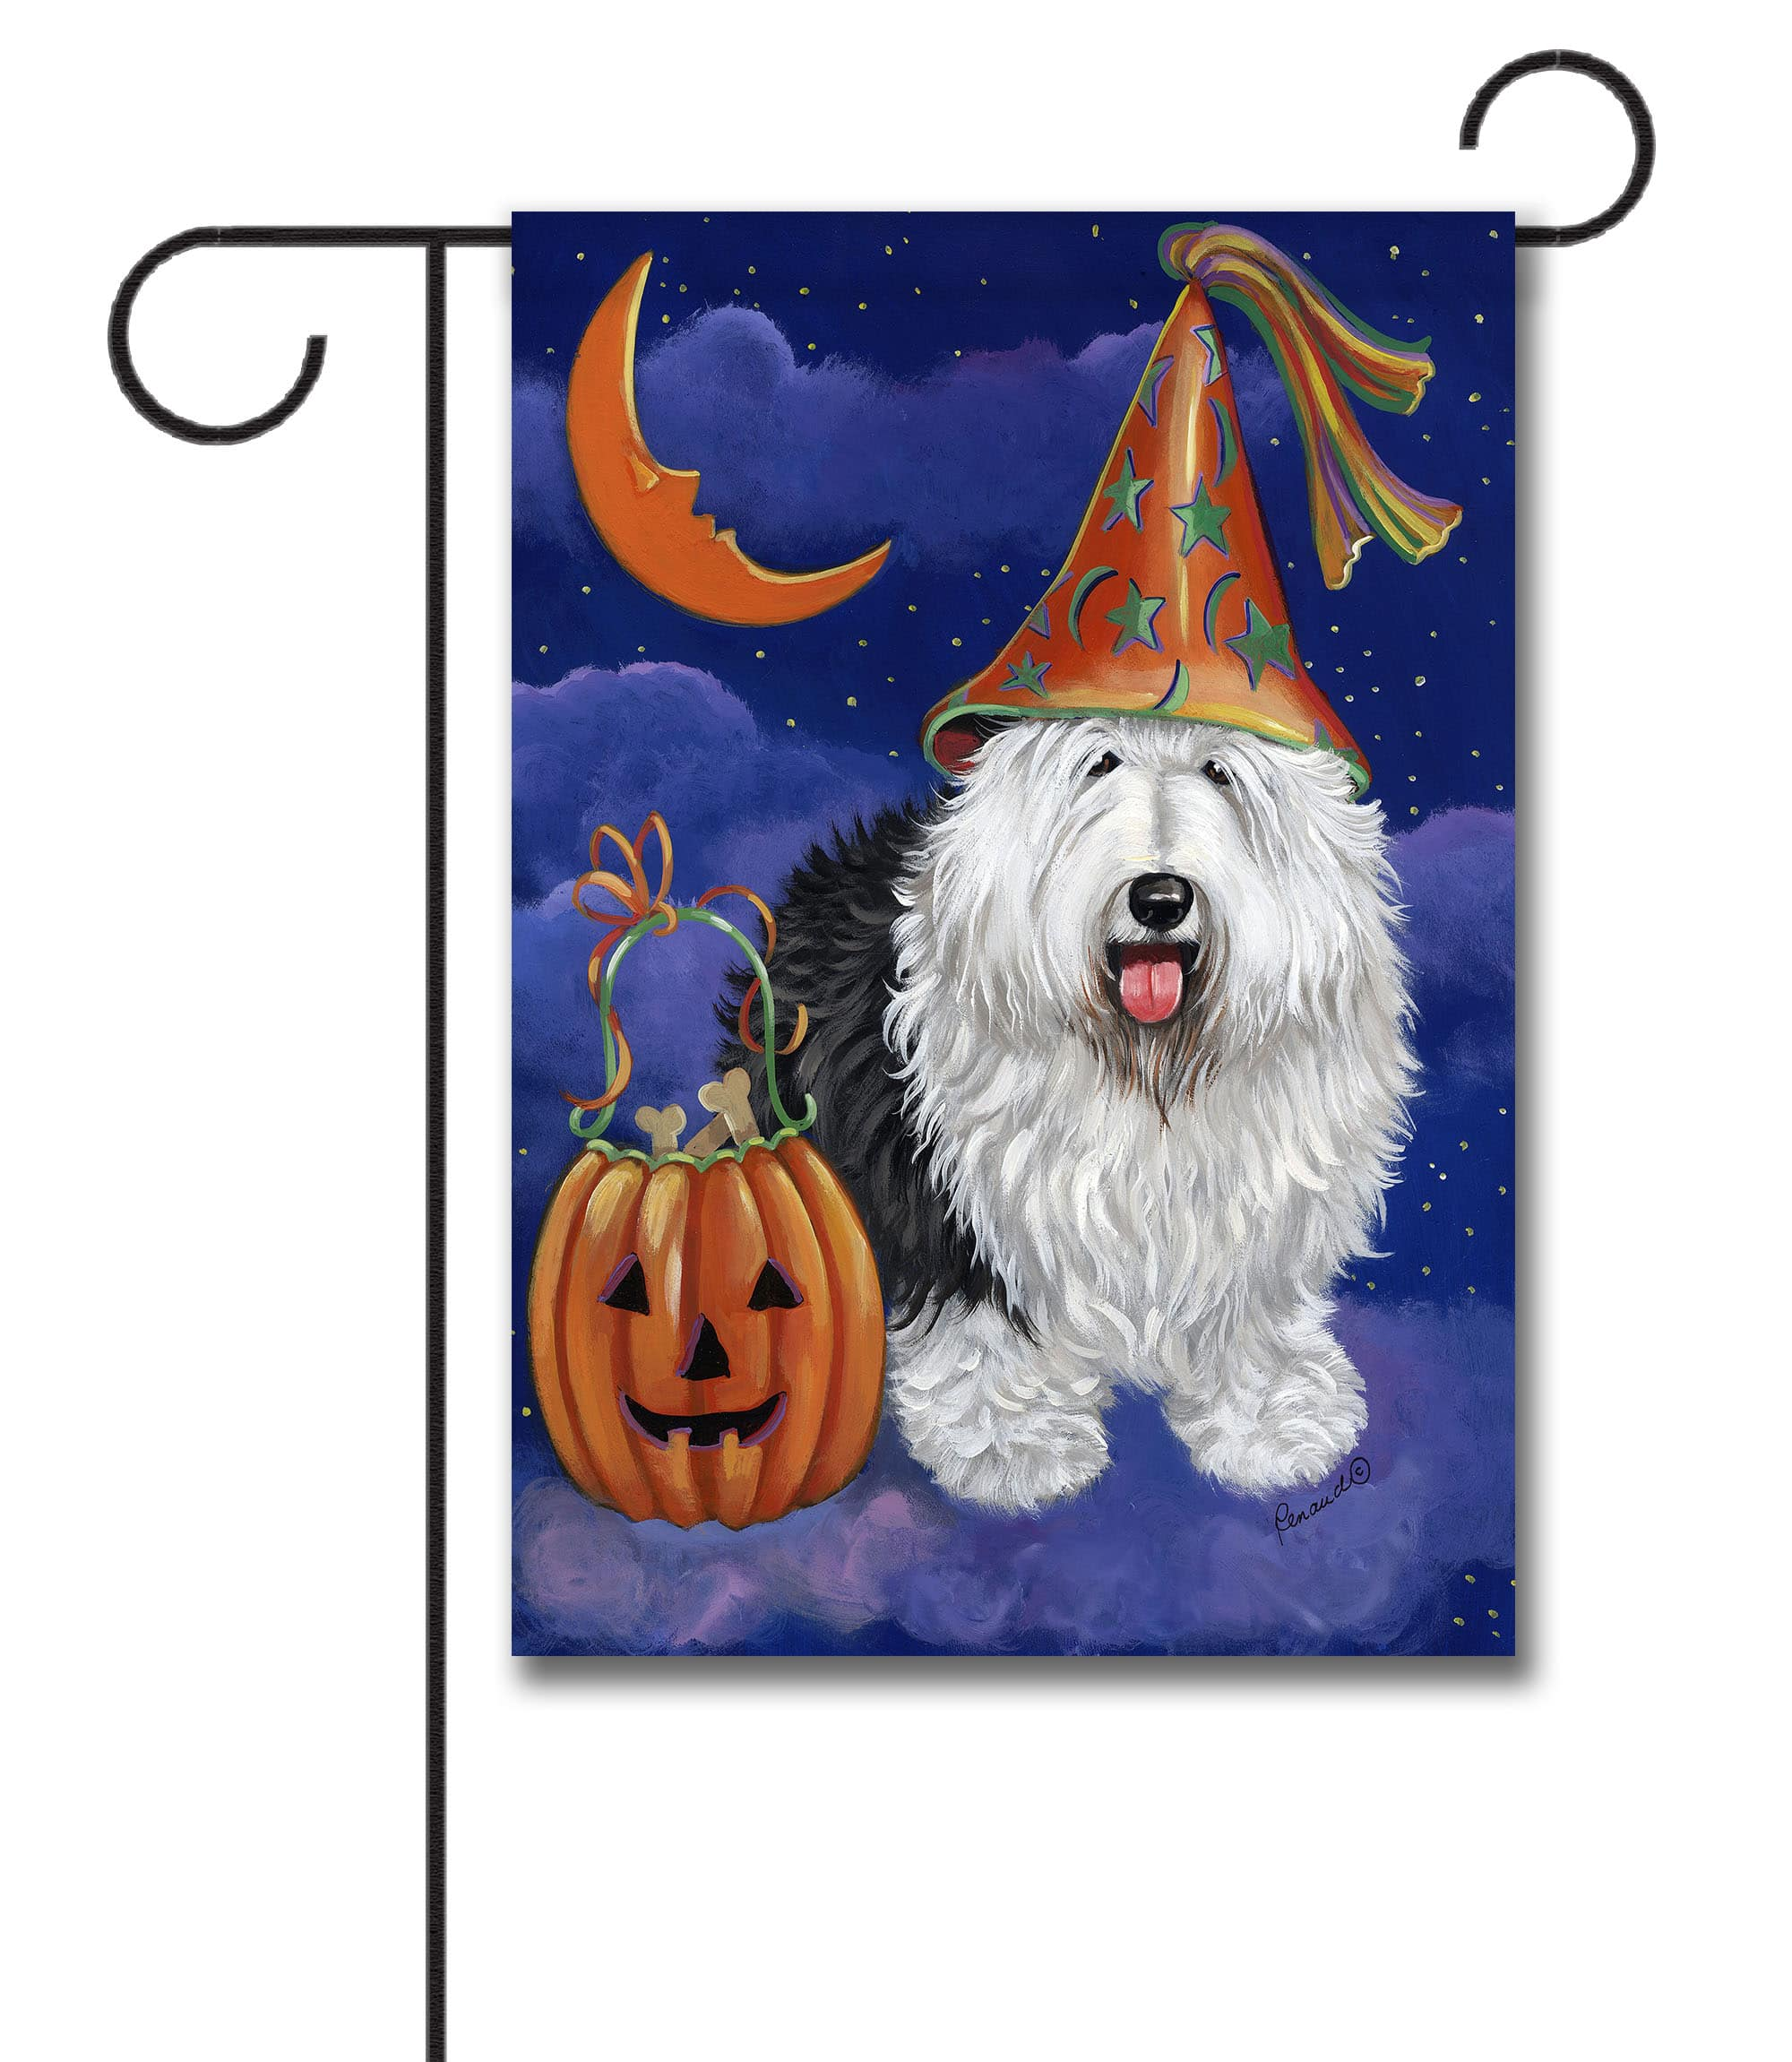 old english sheepdog halloweenie - garden flag - 12.5'' x 18